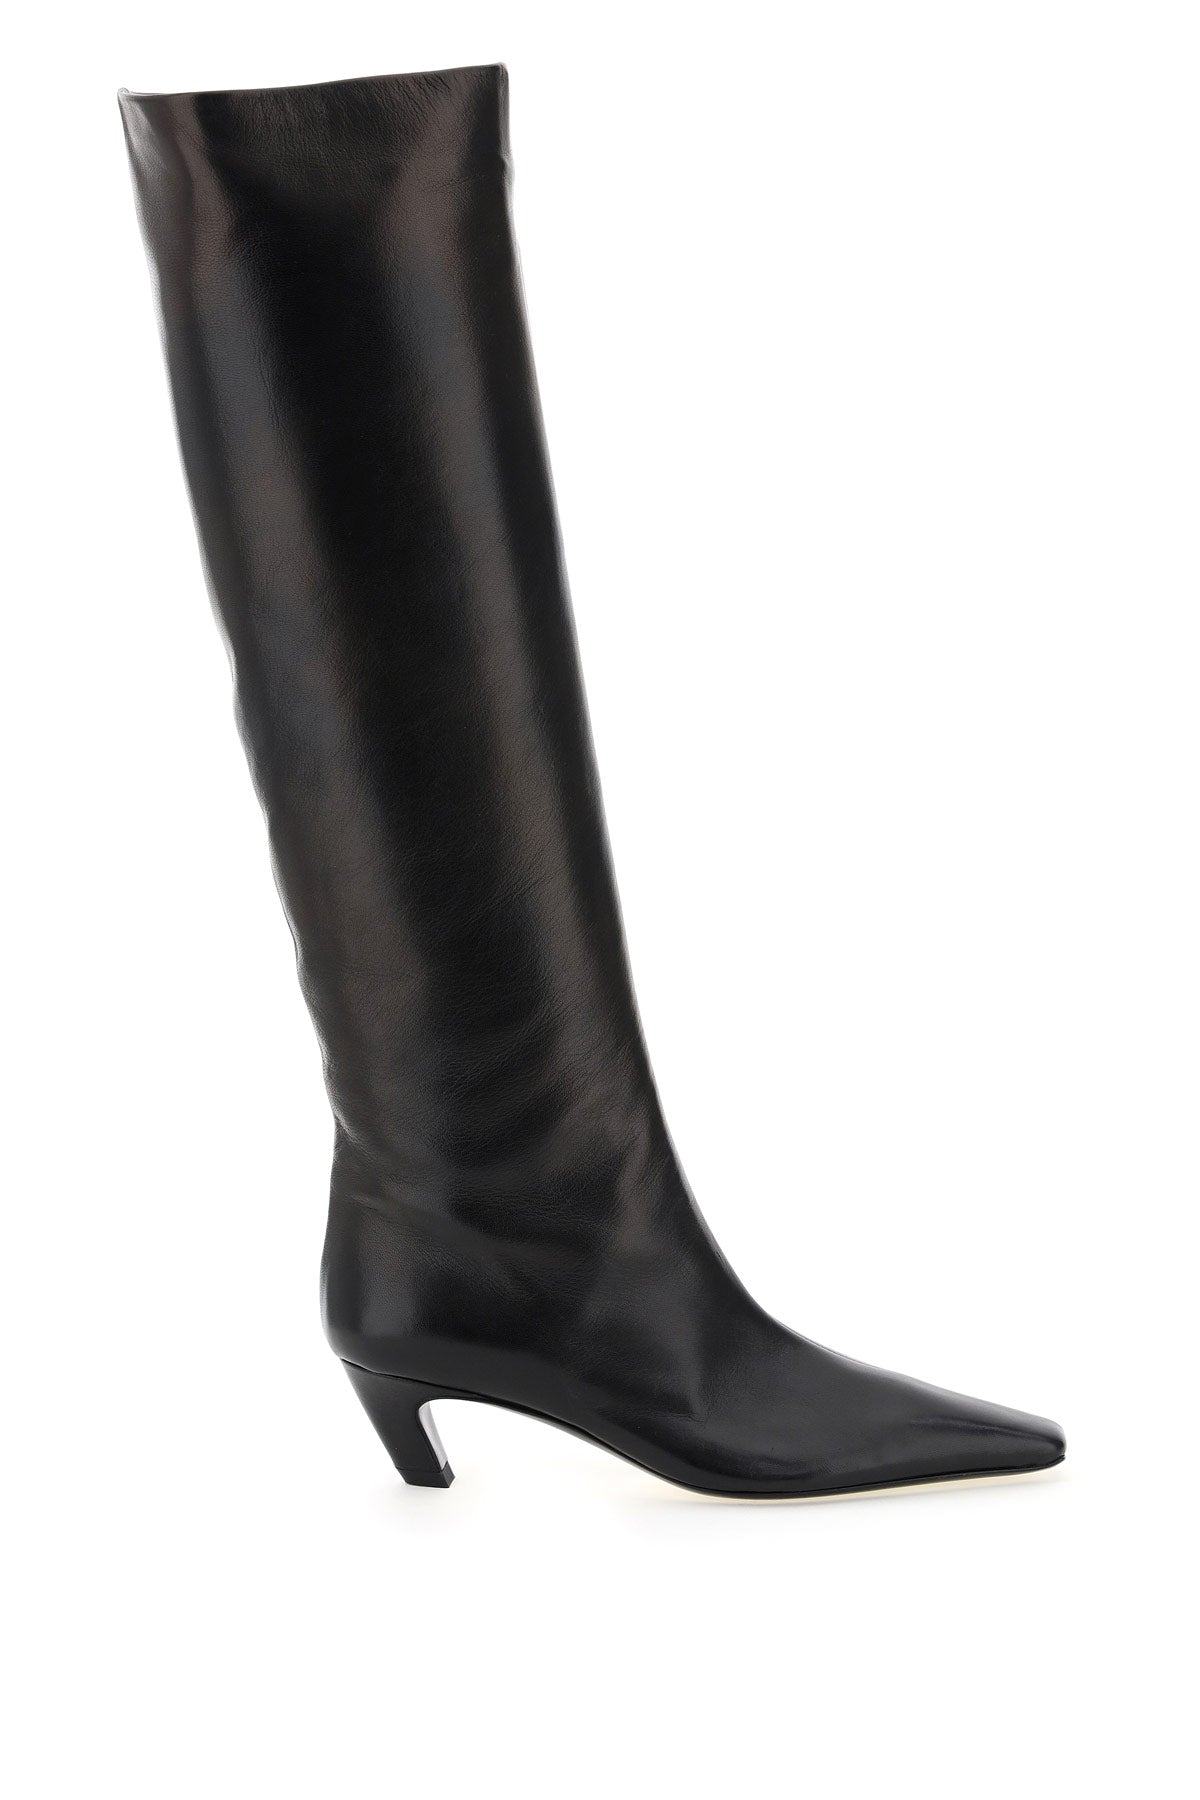 Khaite KHAITE DAVIS KNEE HIGH BOOTS